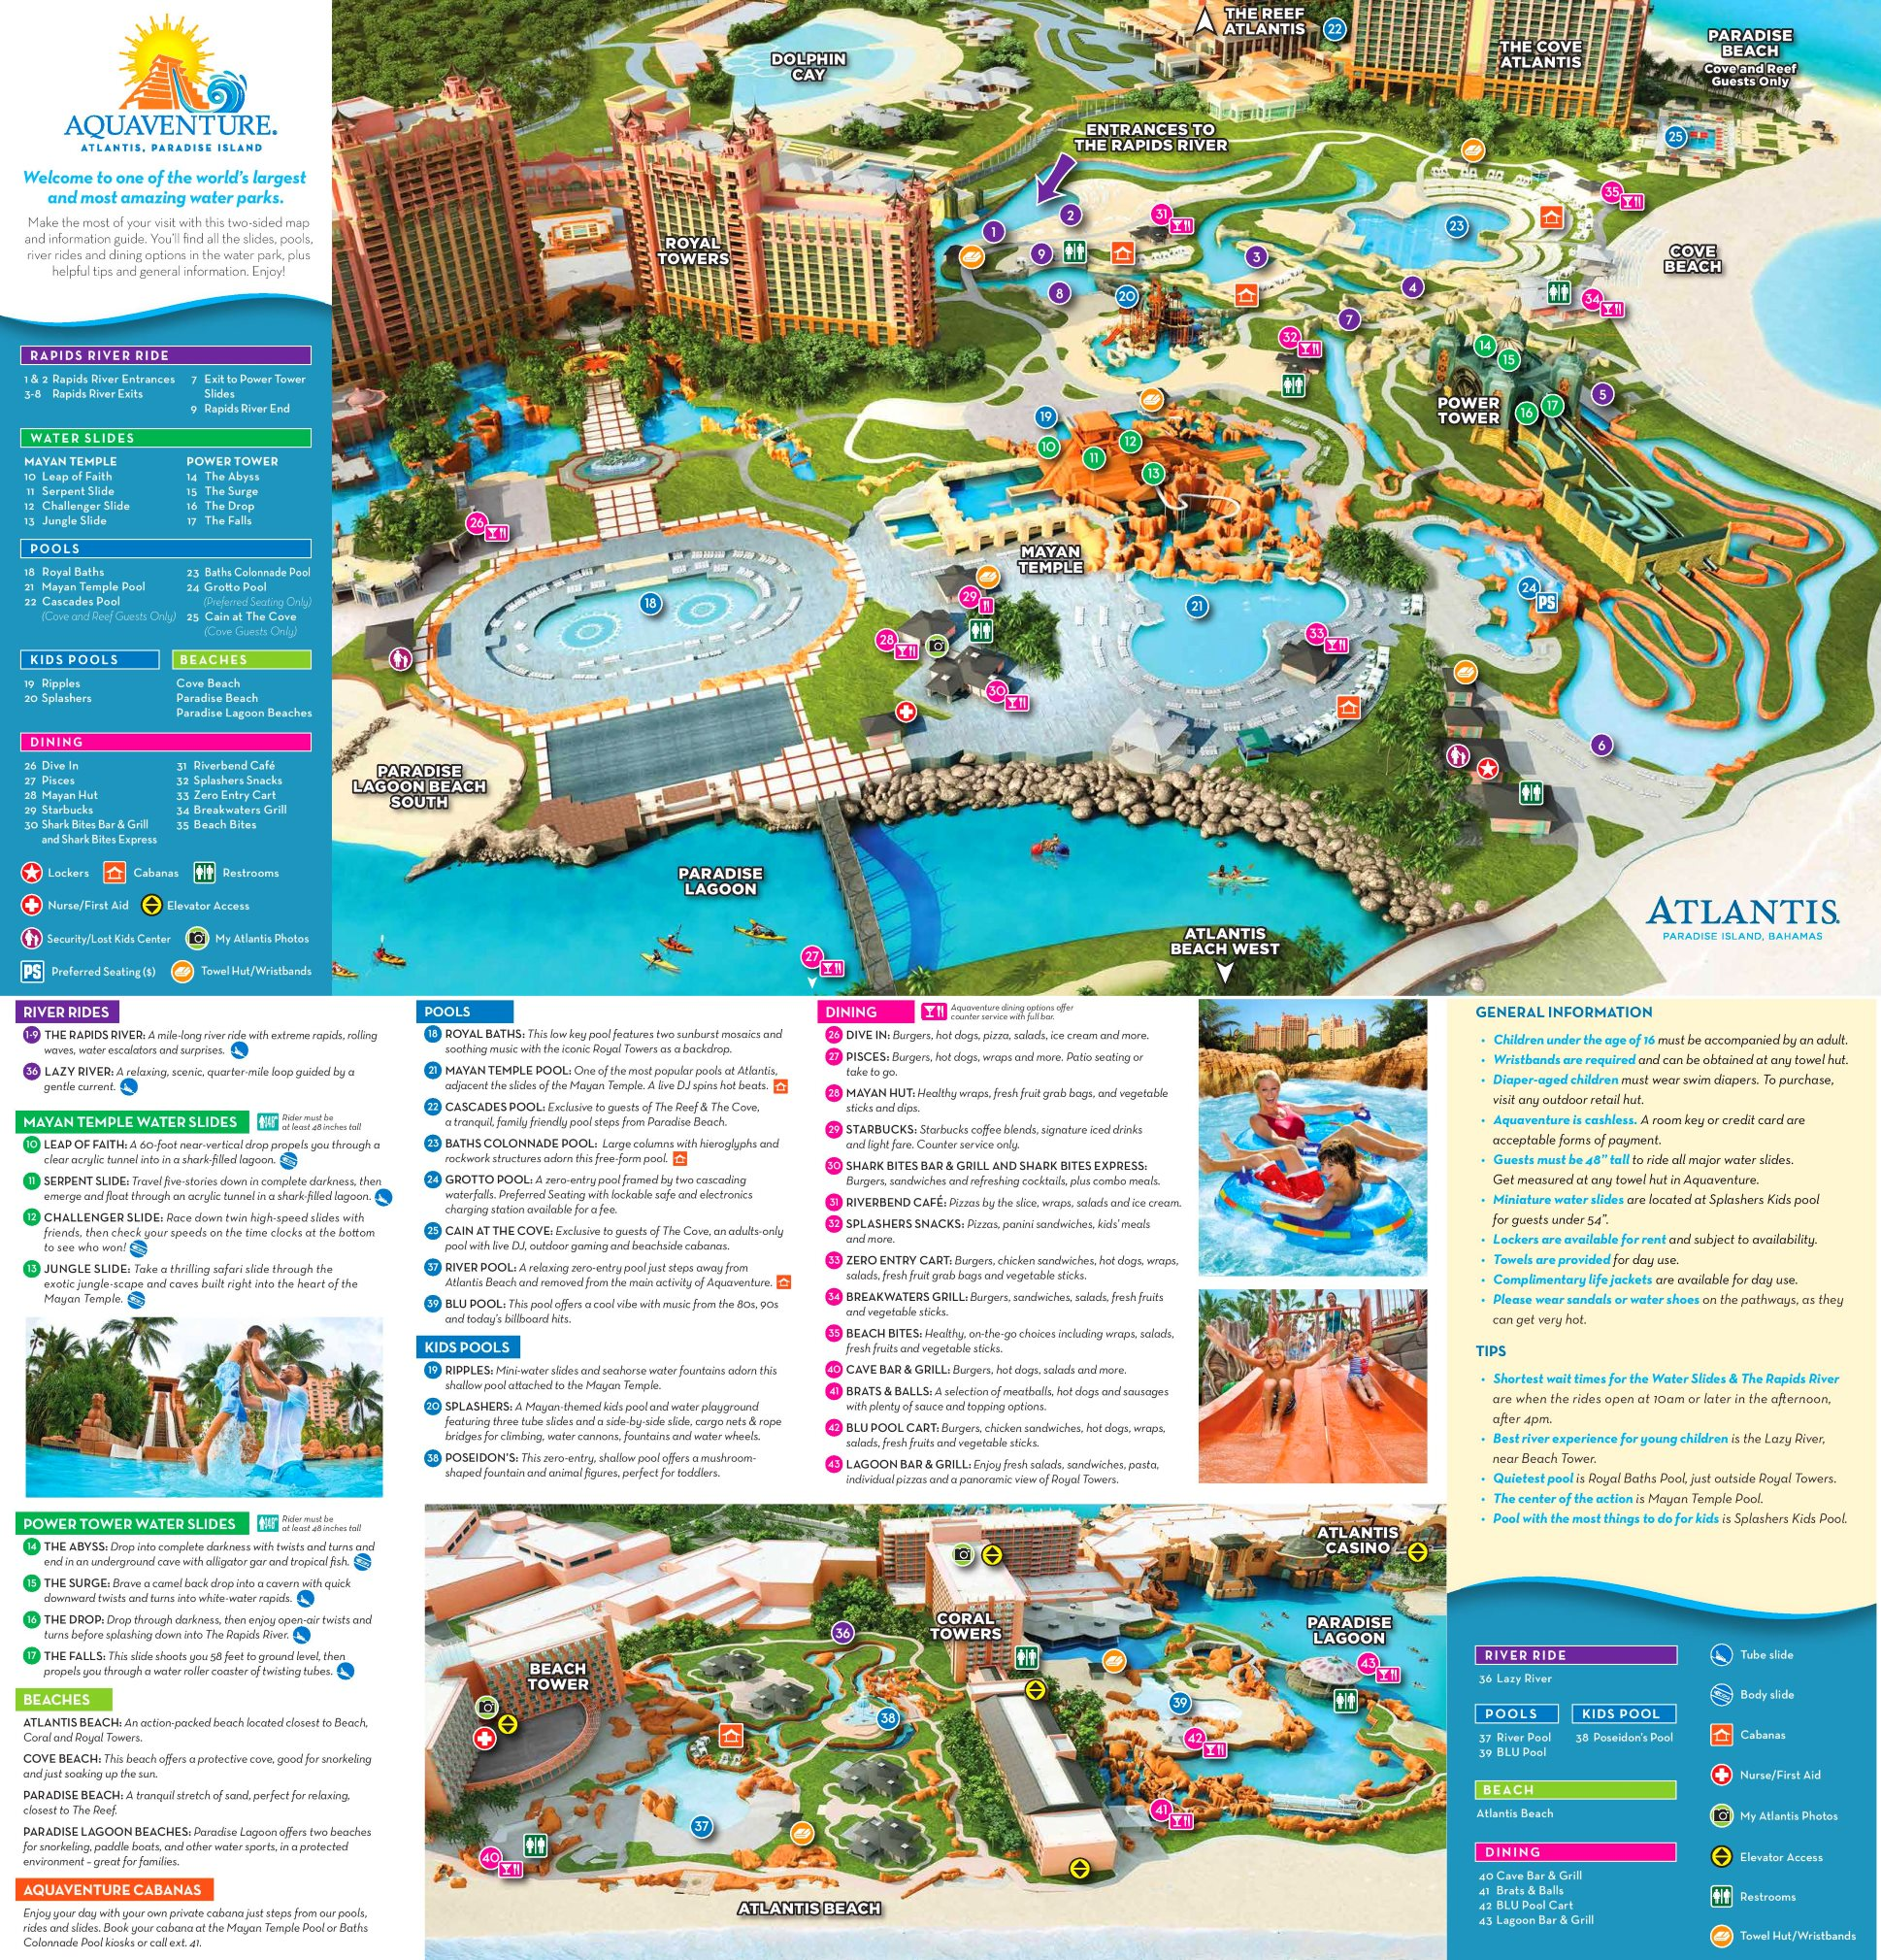 Best Attractions In North Texas: Atlantis Paradise Island Tourist Attractions Map